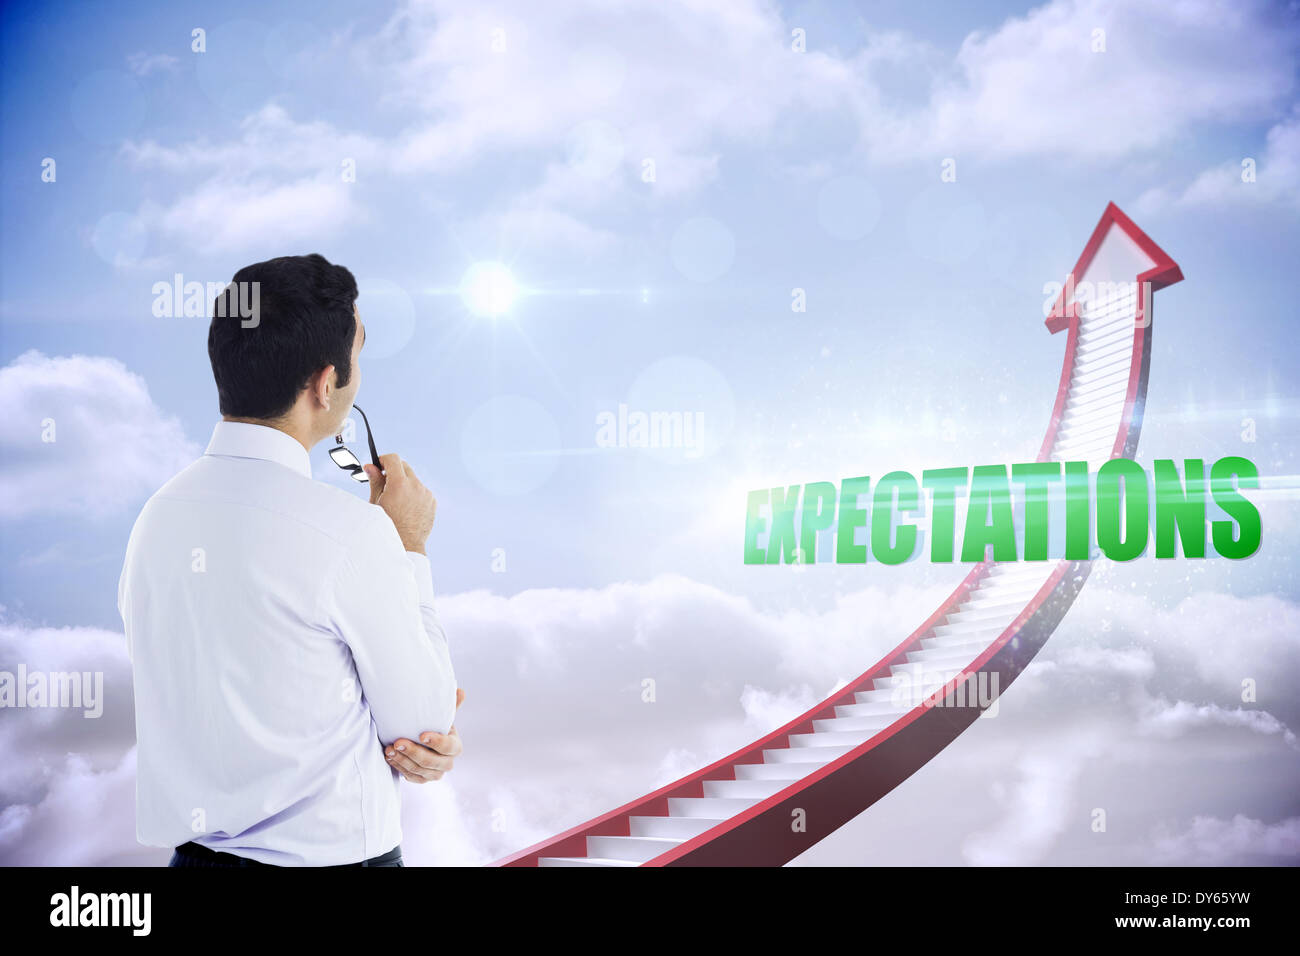 Expectations against red stairs arrow pointing up against sky - Stock Image